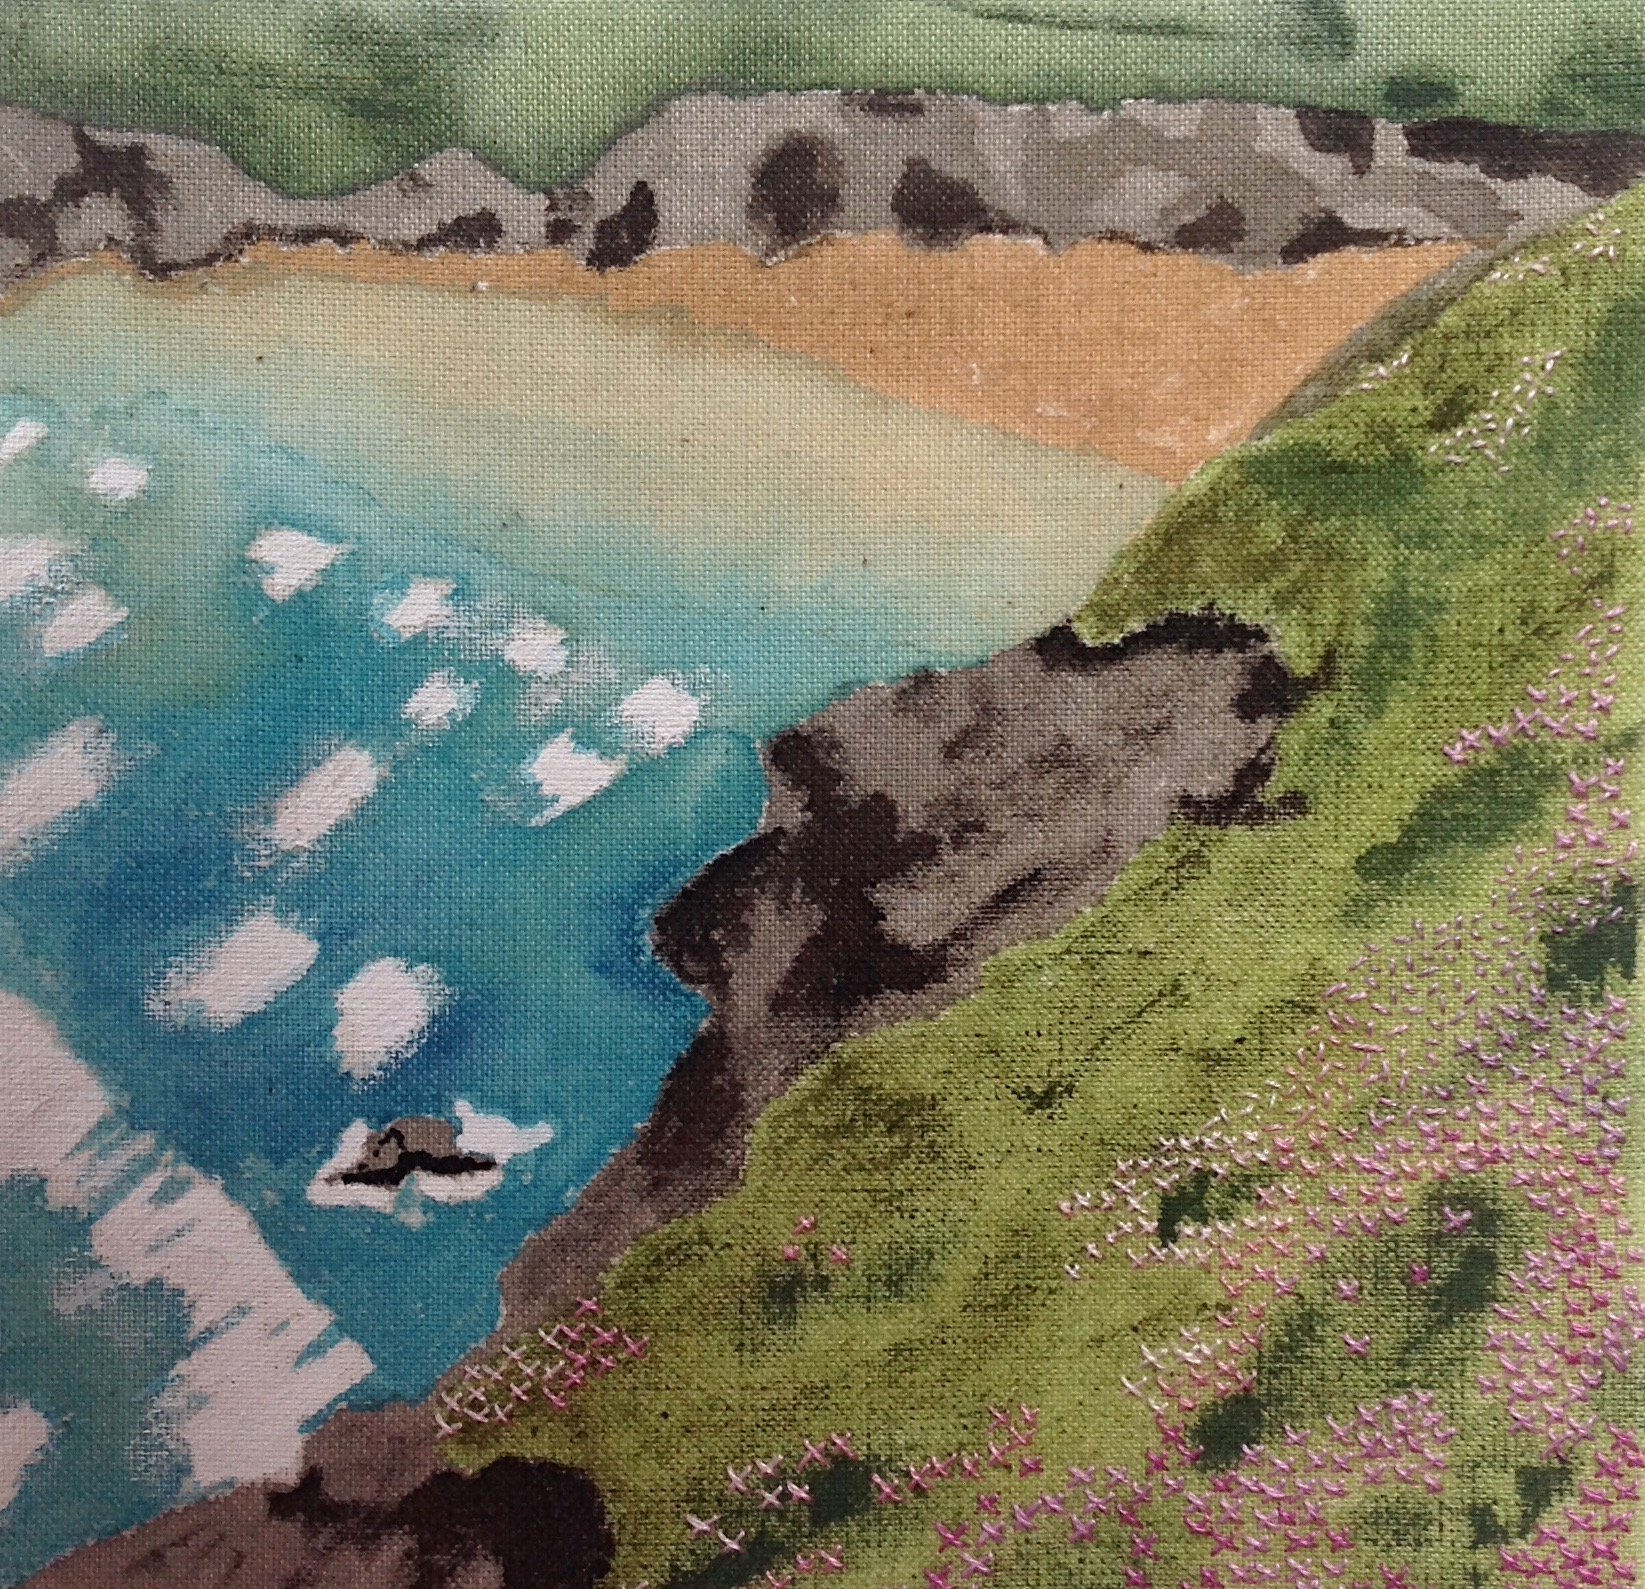 Painting and embroidery of a sea scene by Renate Wilbraham